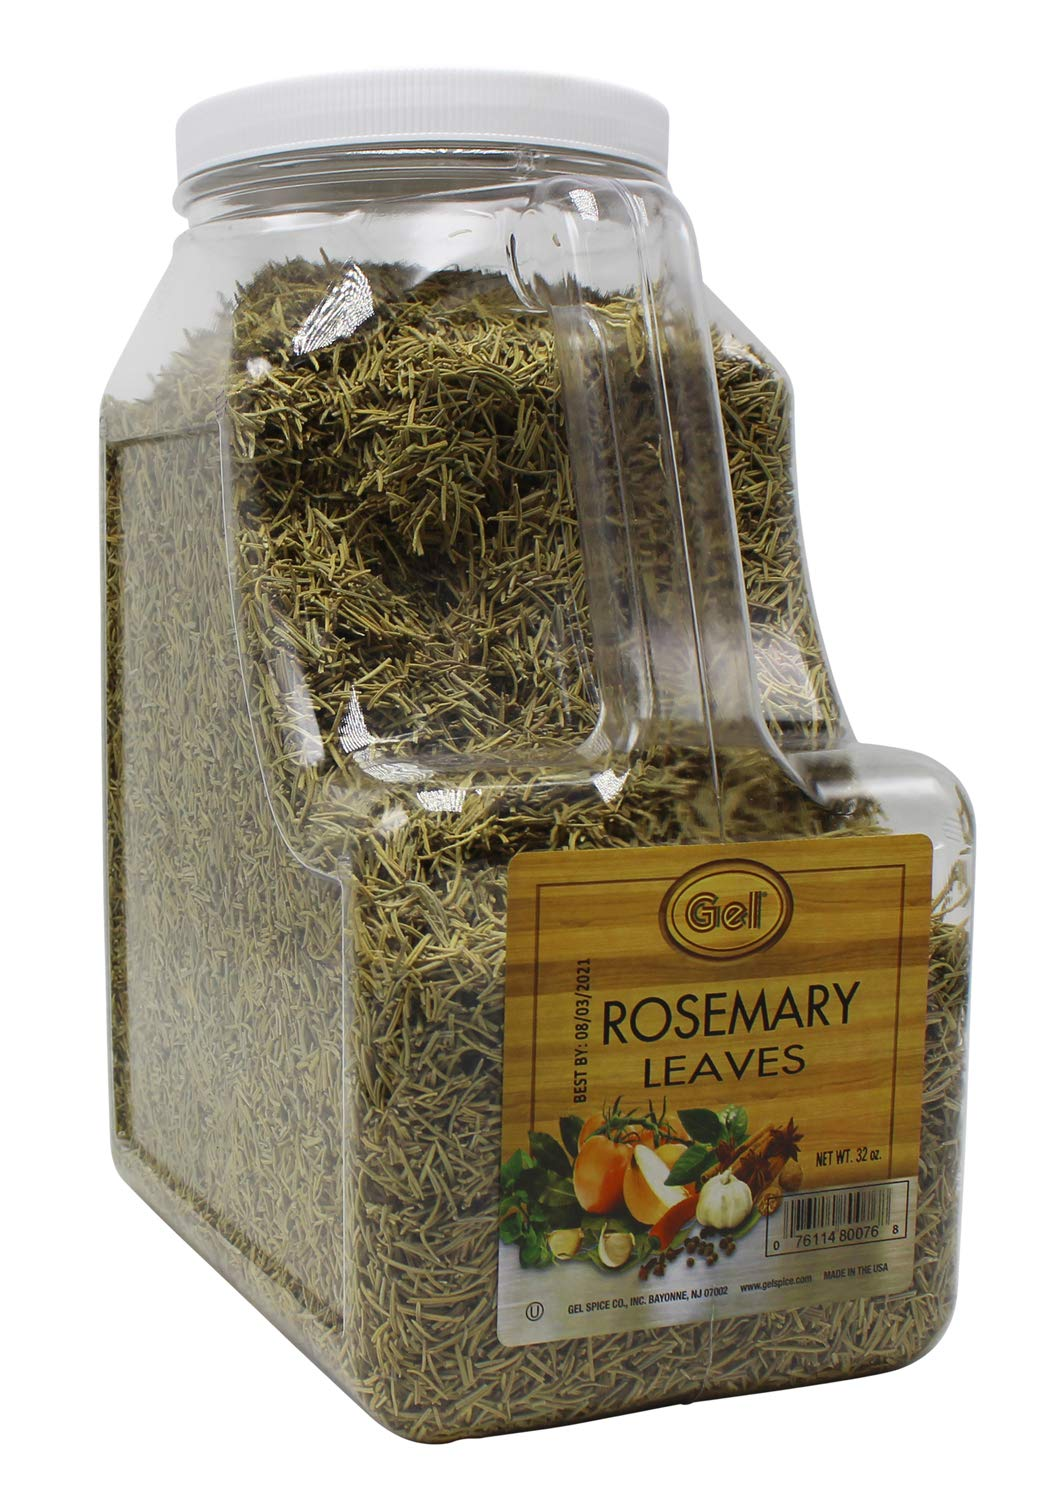 Gel Spice Rosemary Leaves 32oz | Food Service Size